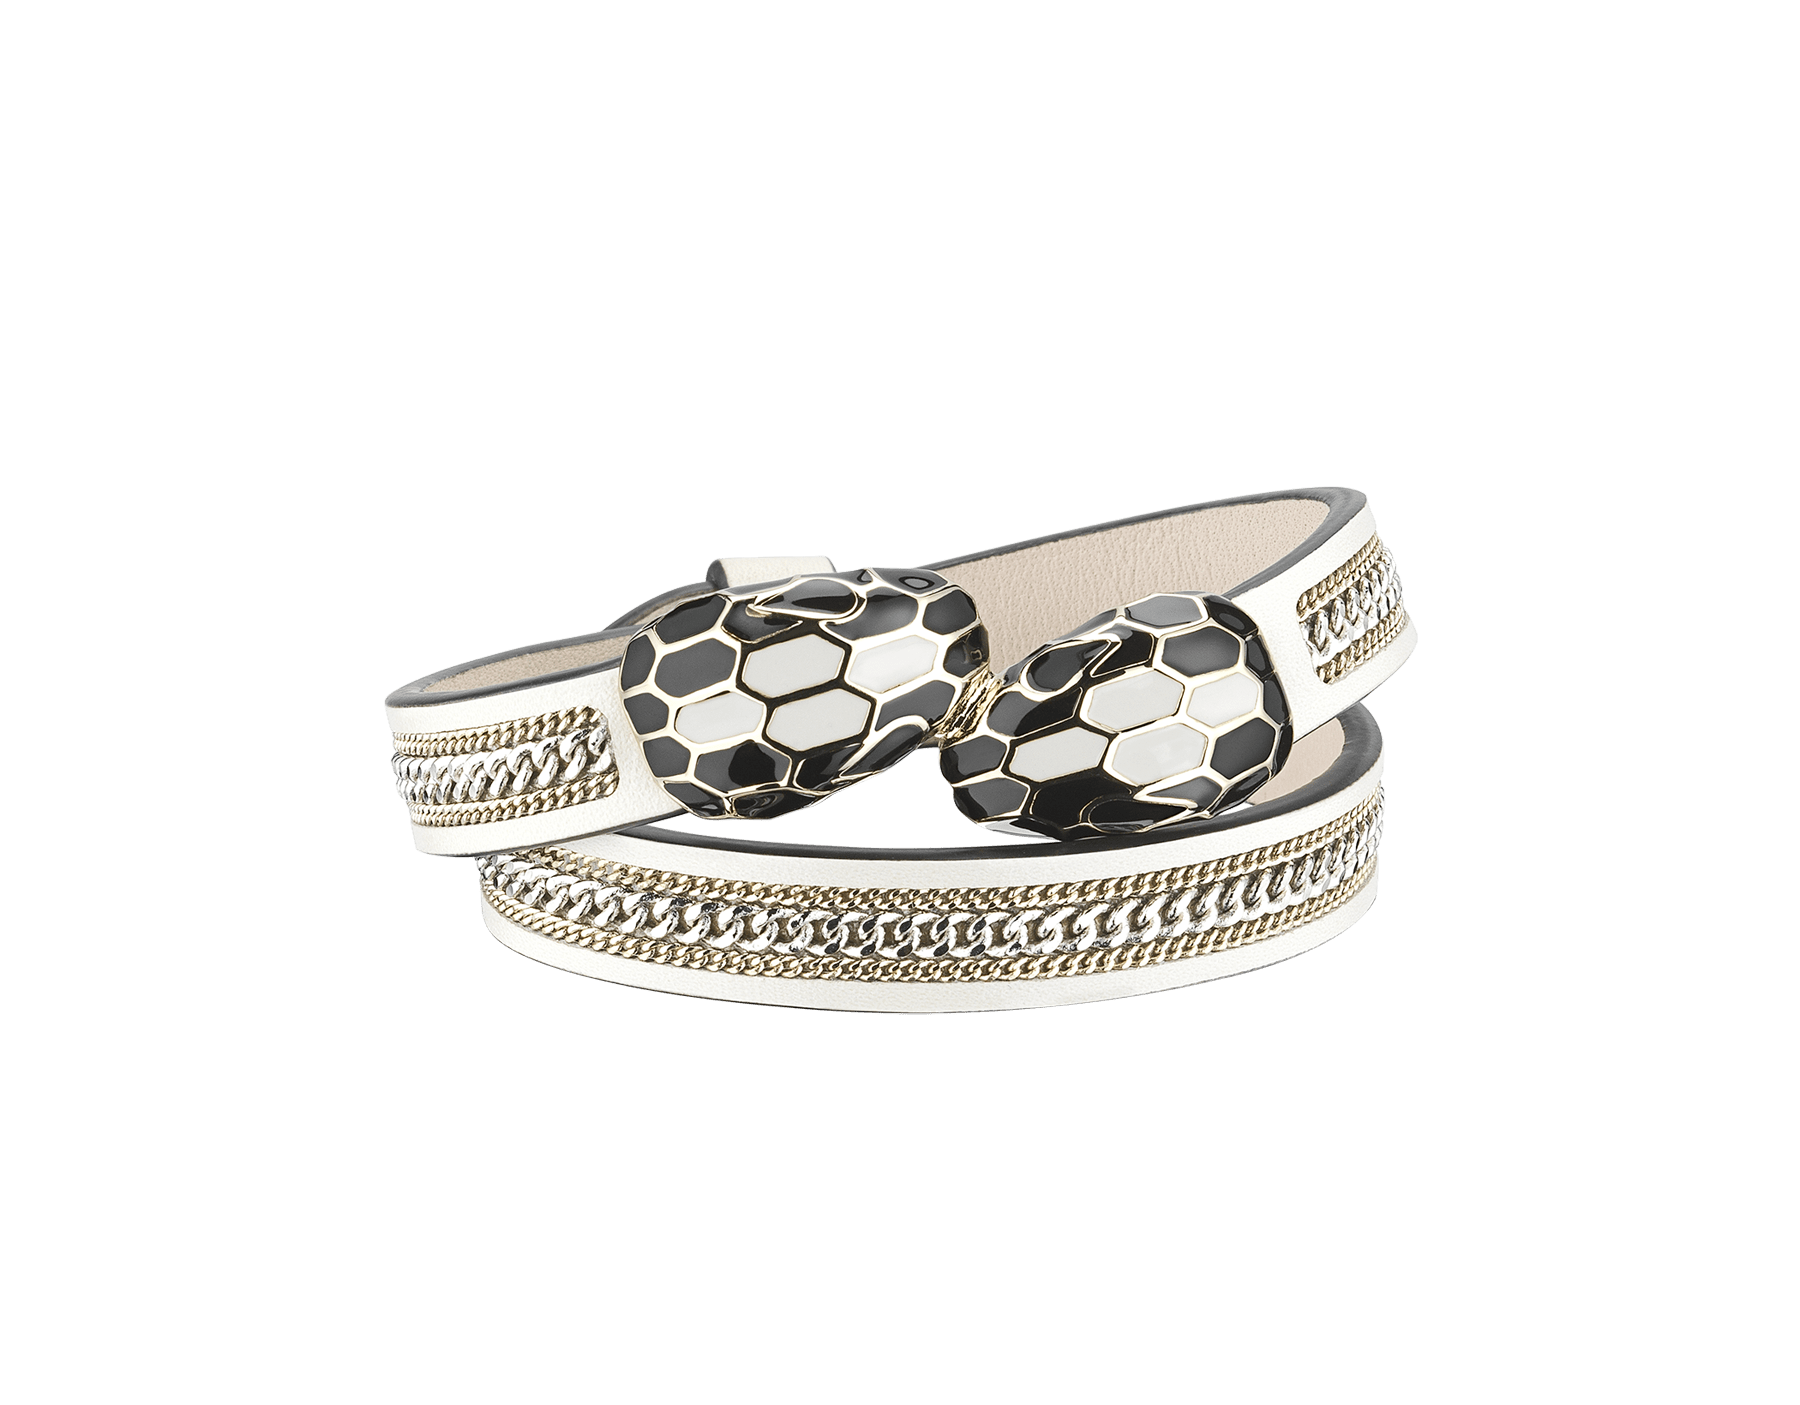 """""""Serpenti Forever"""" multi-coiled bracelet in white agate calf leather with a """"3-Chain"""" motif and light gold plated brass hardware. Iconic contraire snakehead décor enamelled in black and white agate and finished with seductive black enamel eyes. MCSerp-3CC-WA image 1"""